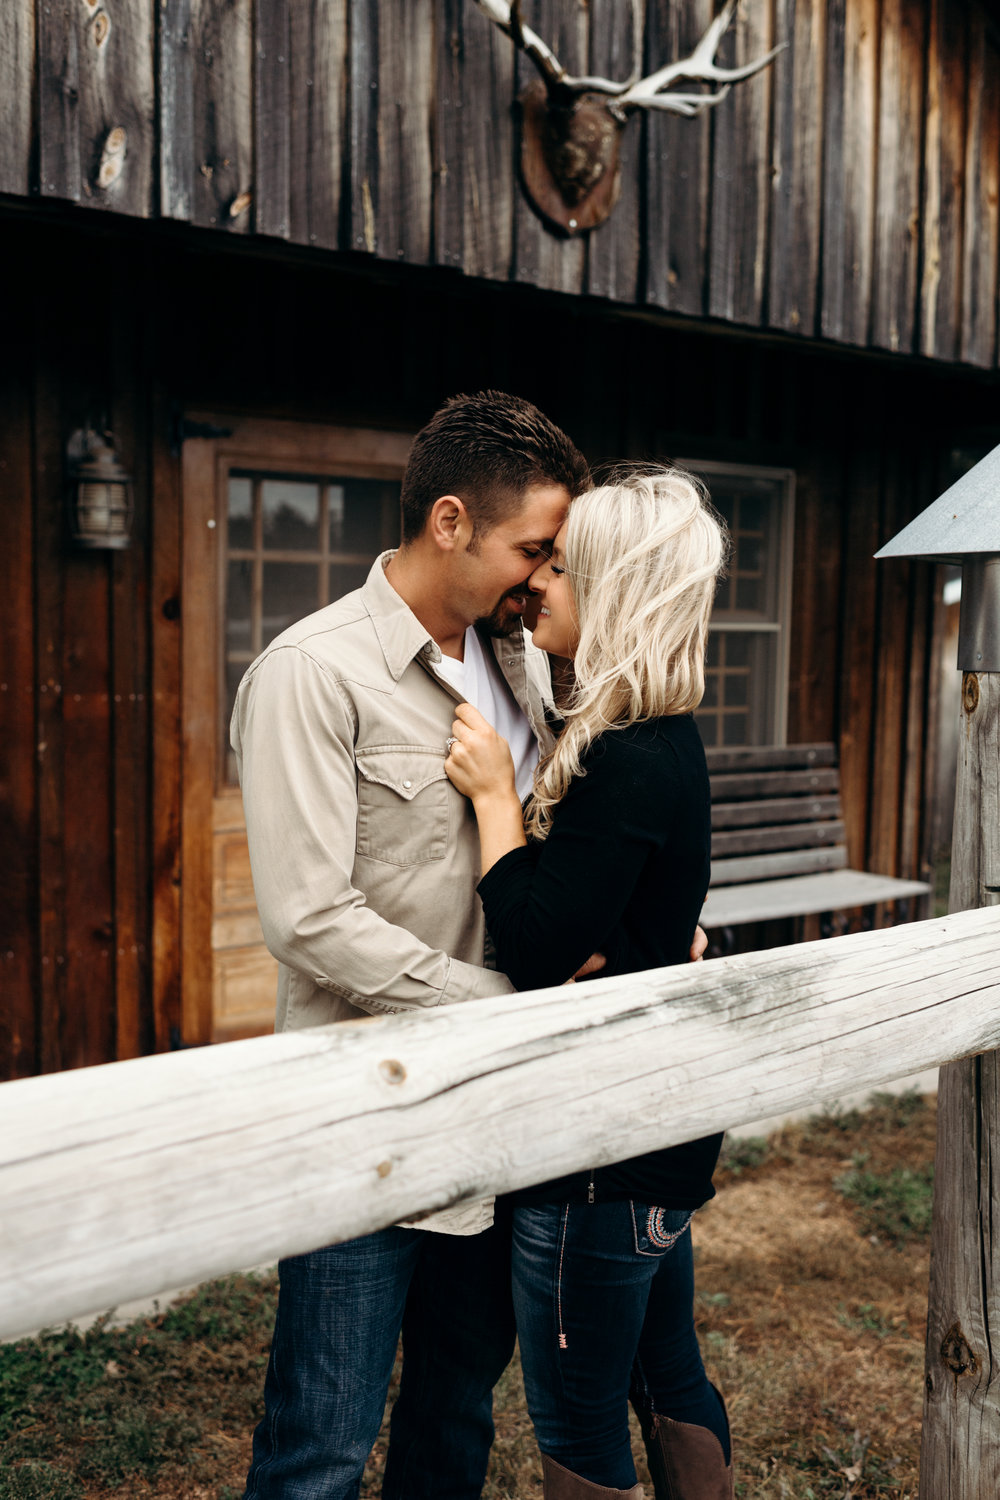 Engaged couple smiles at each other in front of a wooden cabin.